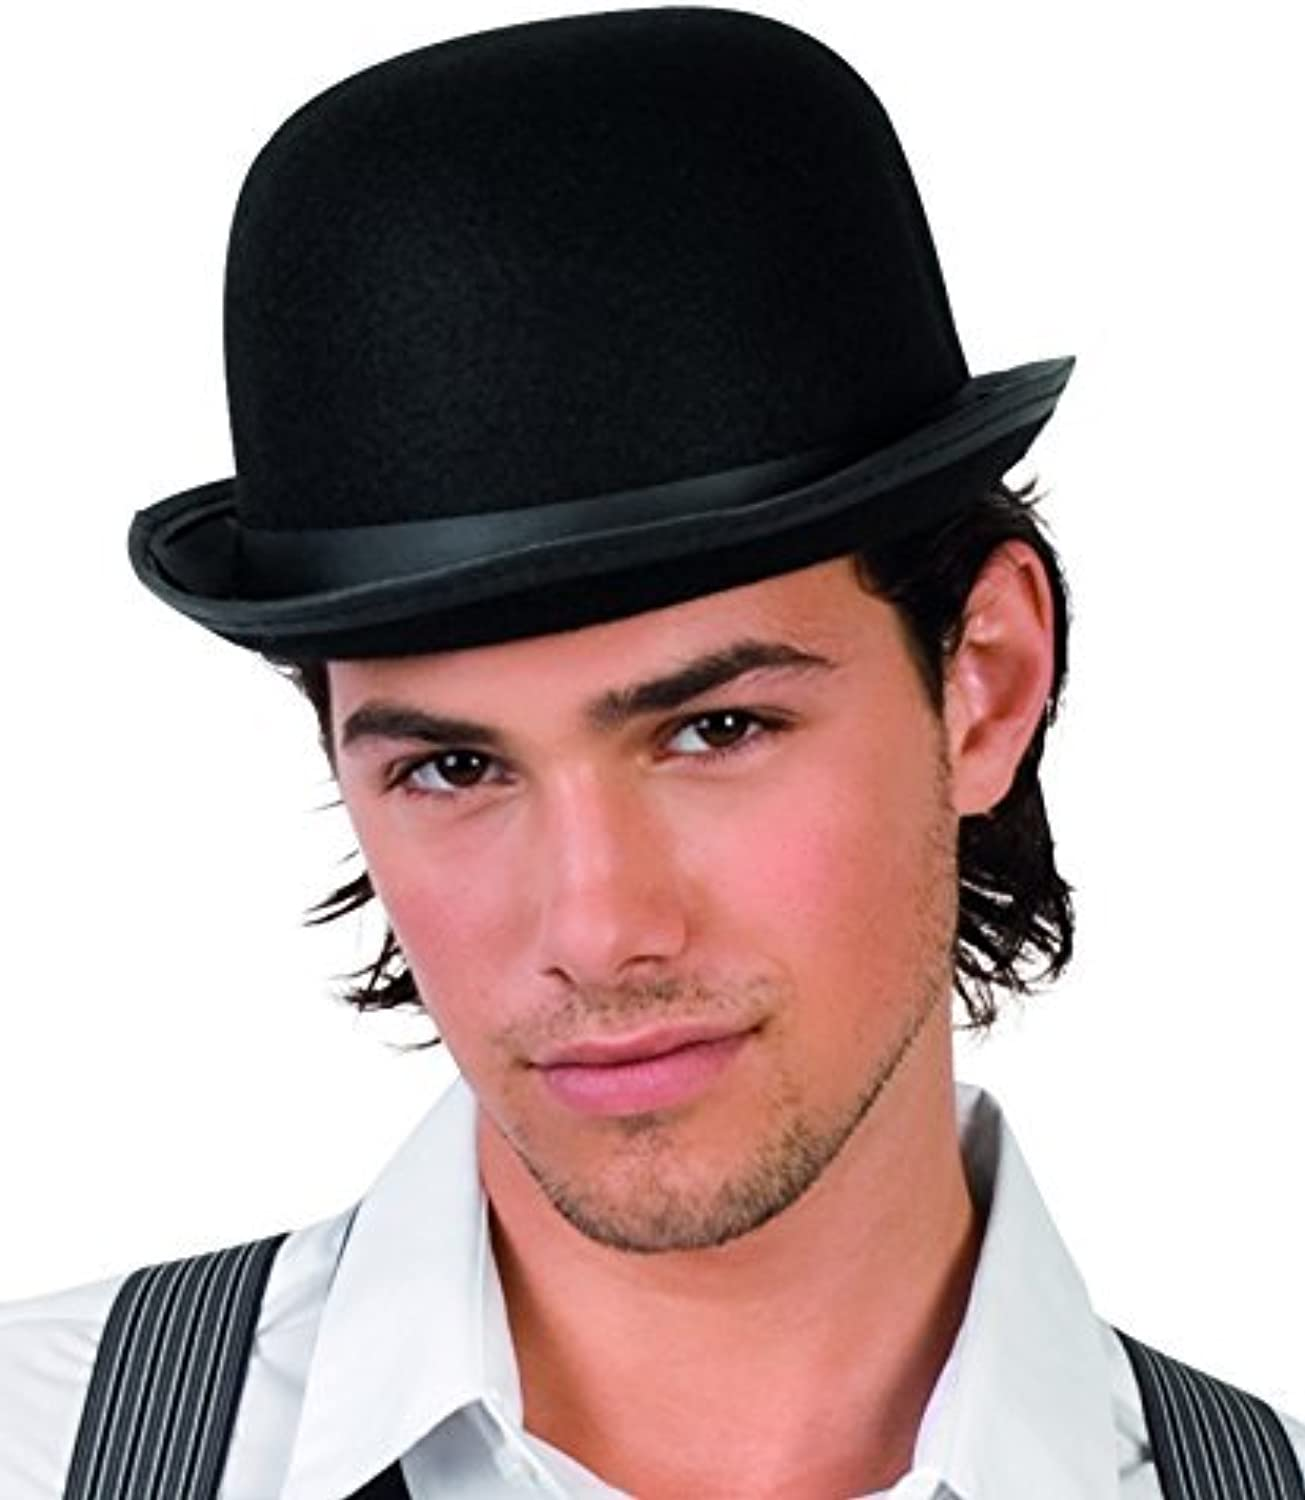 Adult bowler hat by JADEO